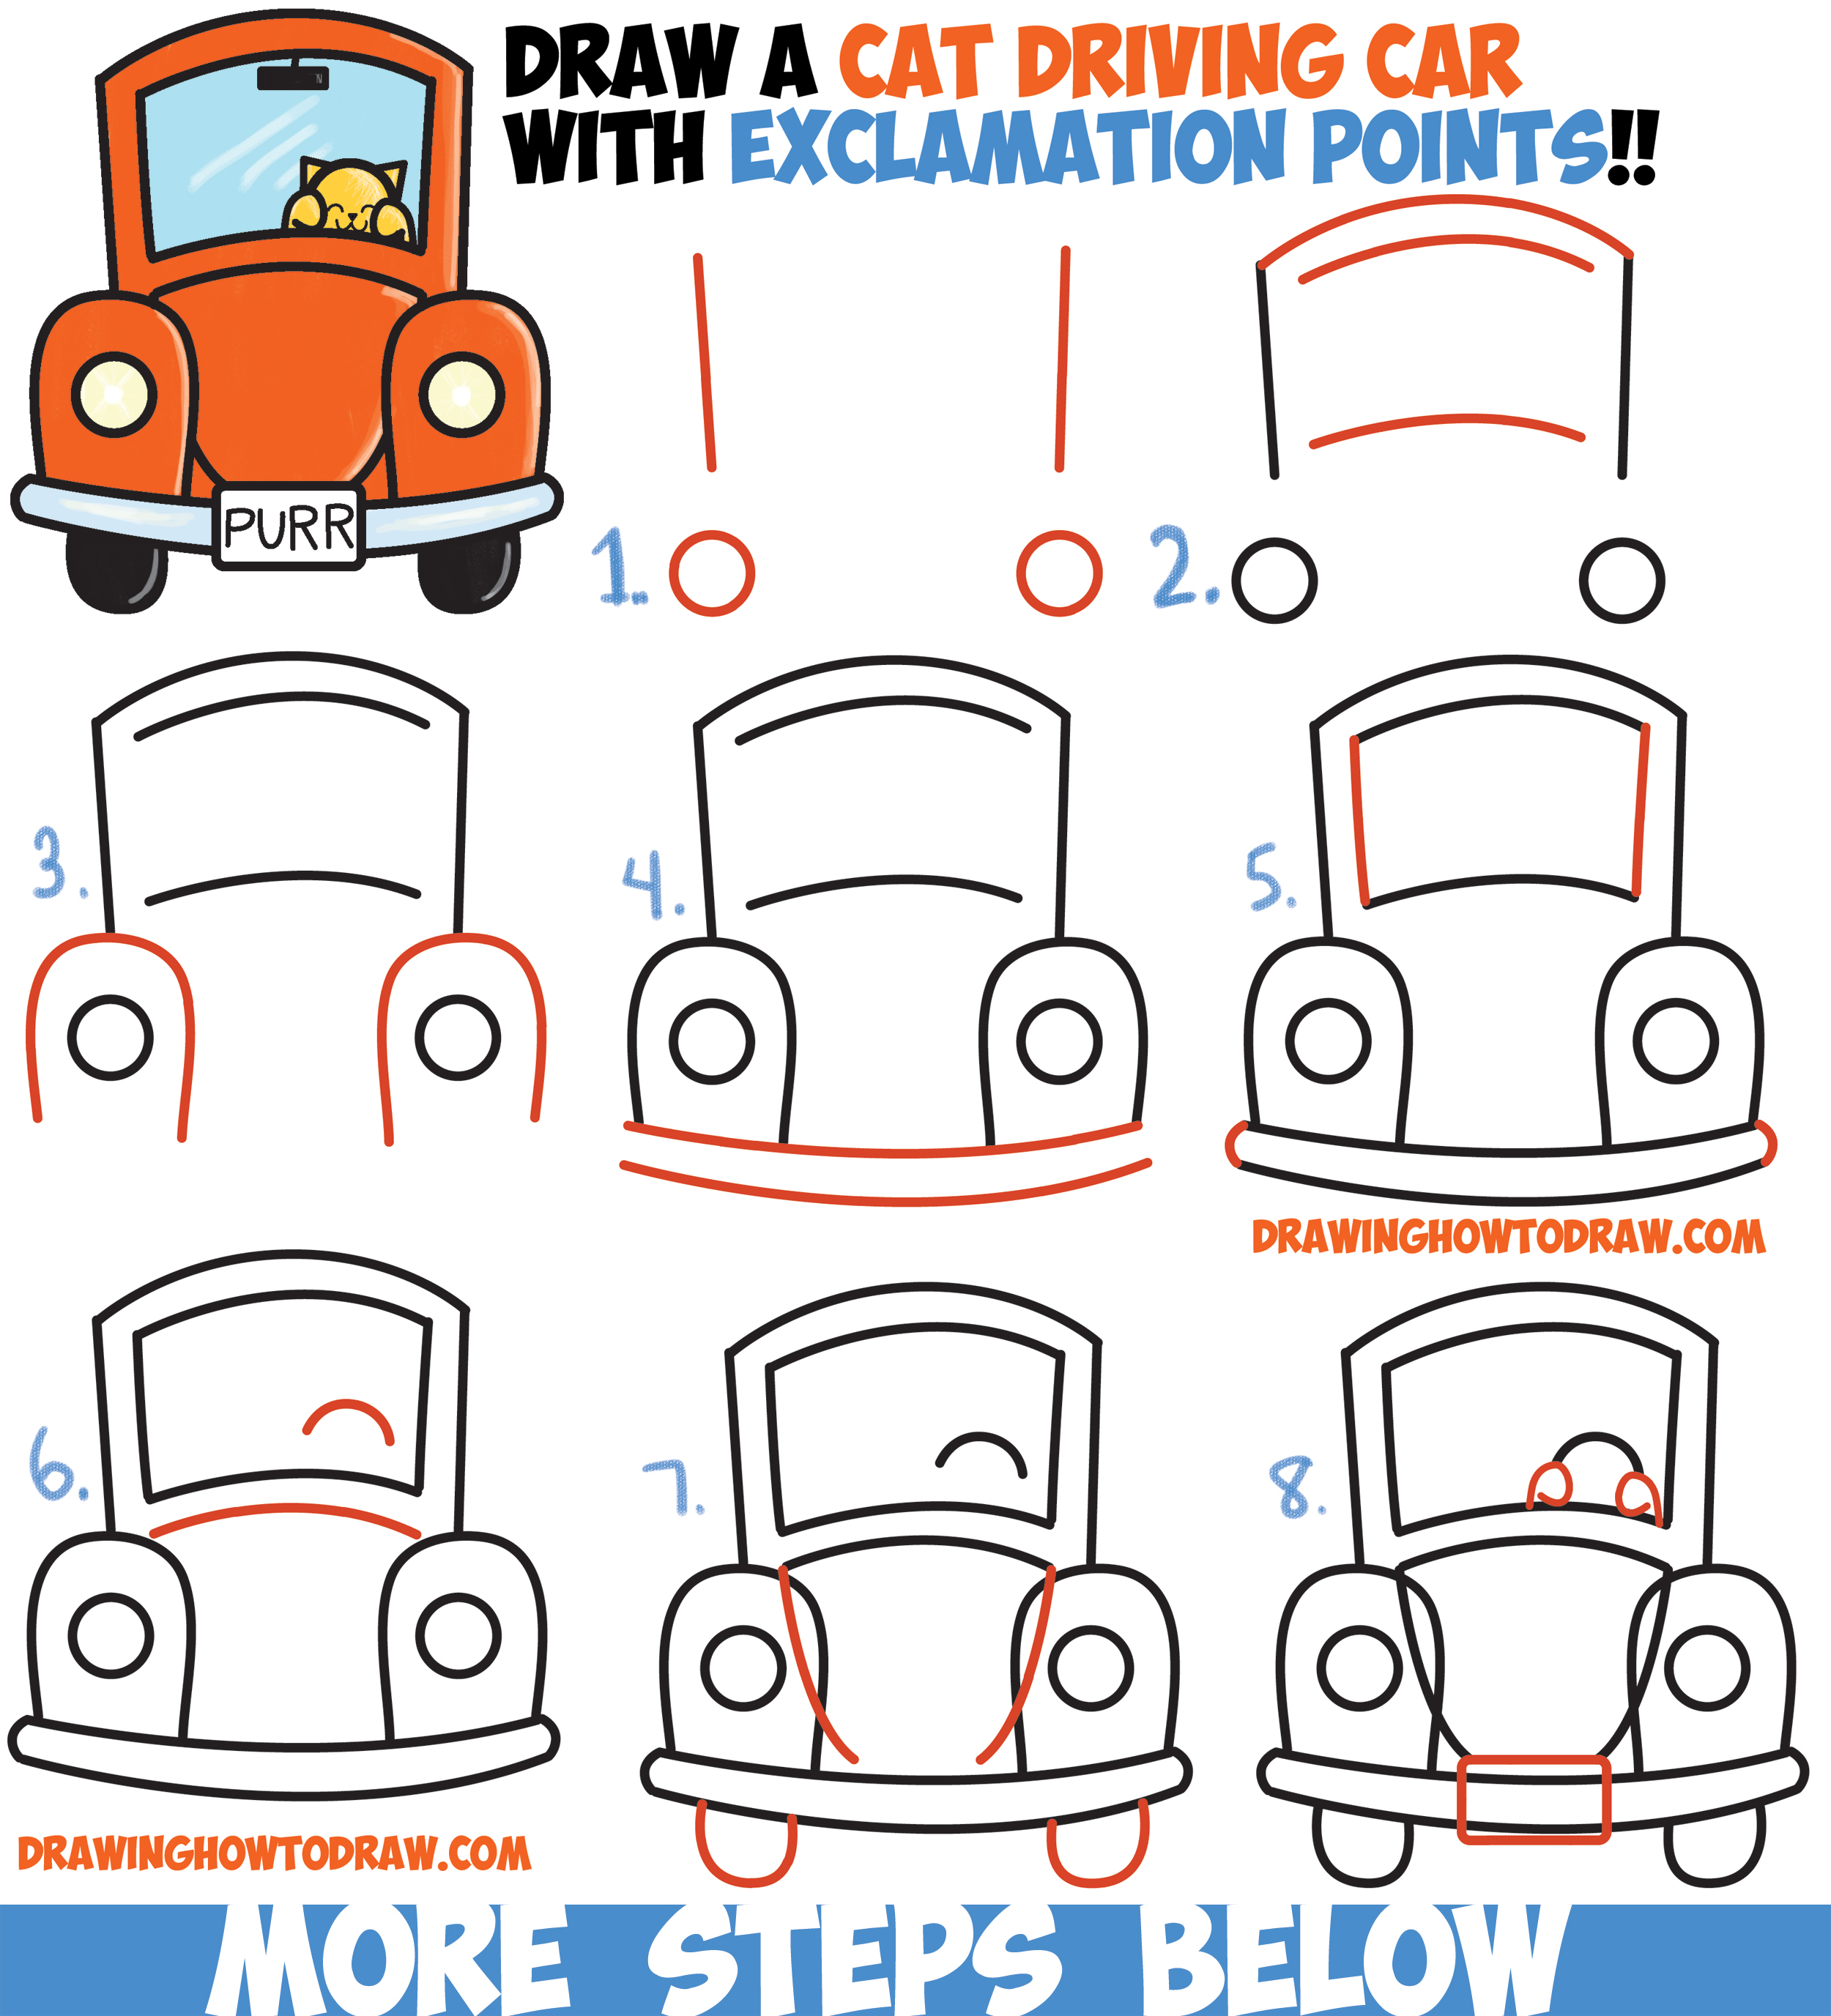 How to draw cute cartoon cat driving a car from for How to make cartoon drawings step by step